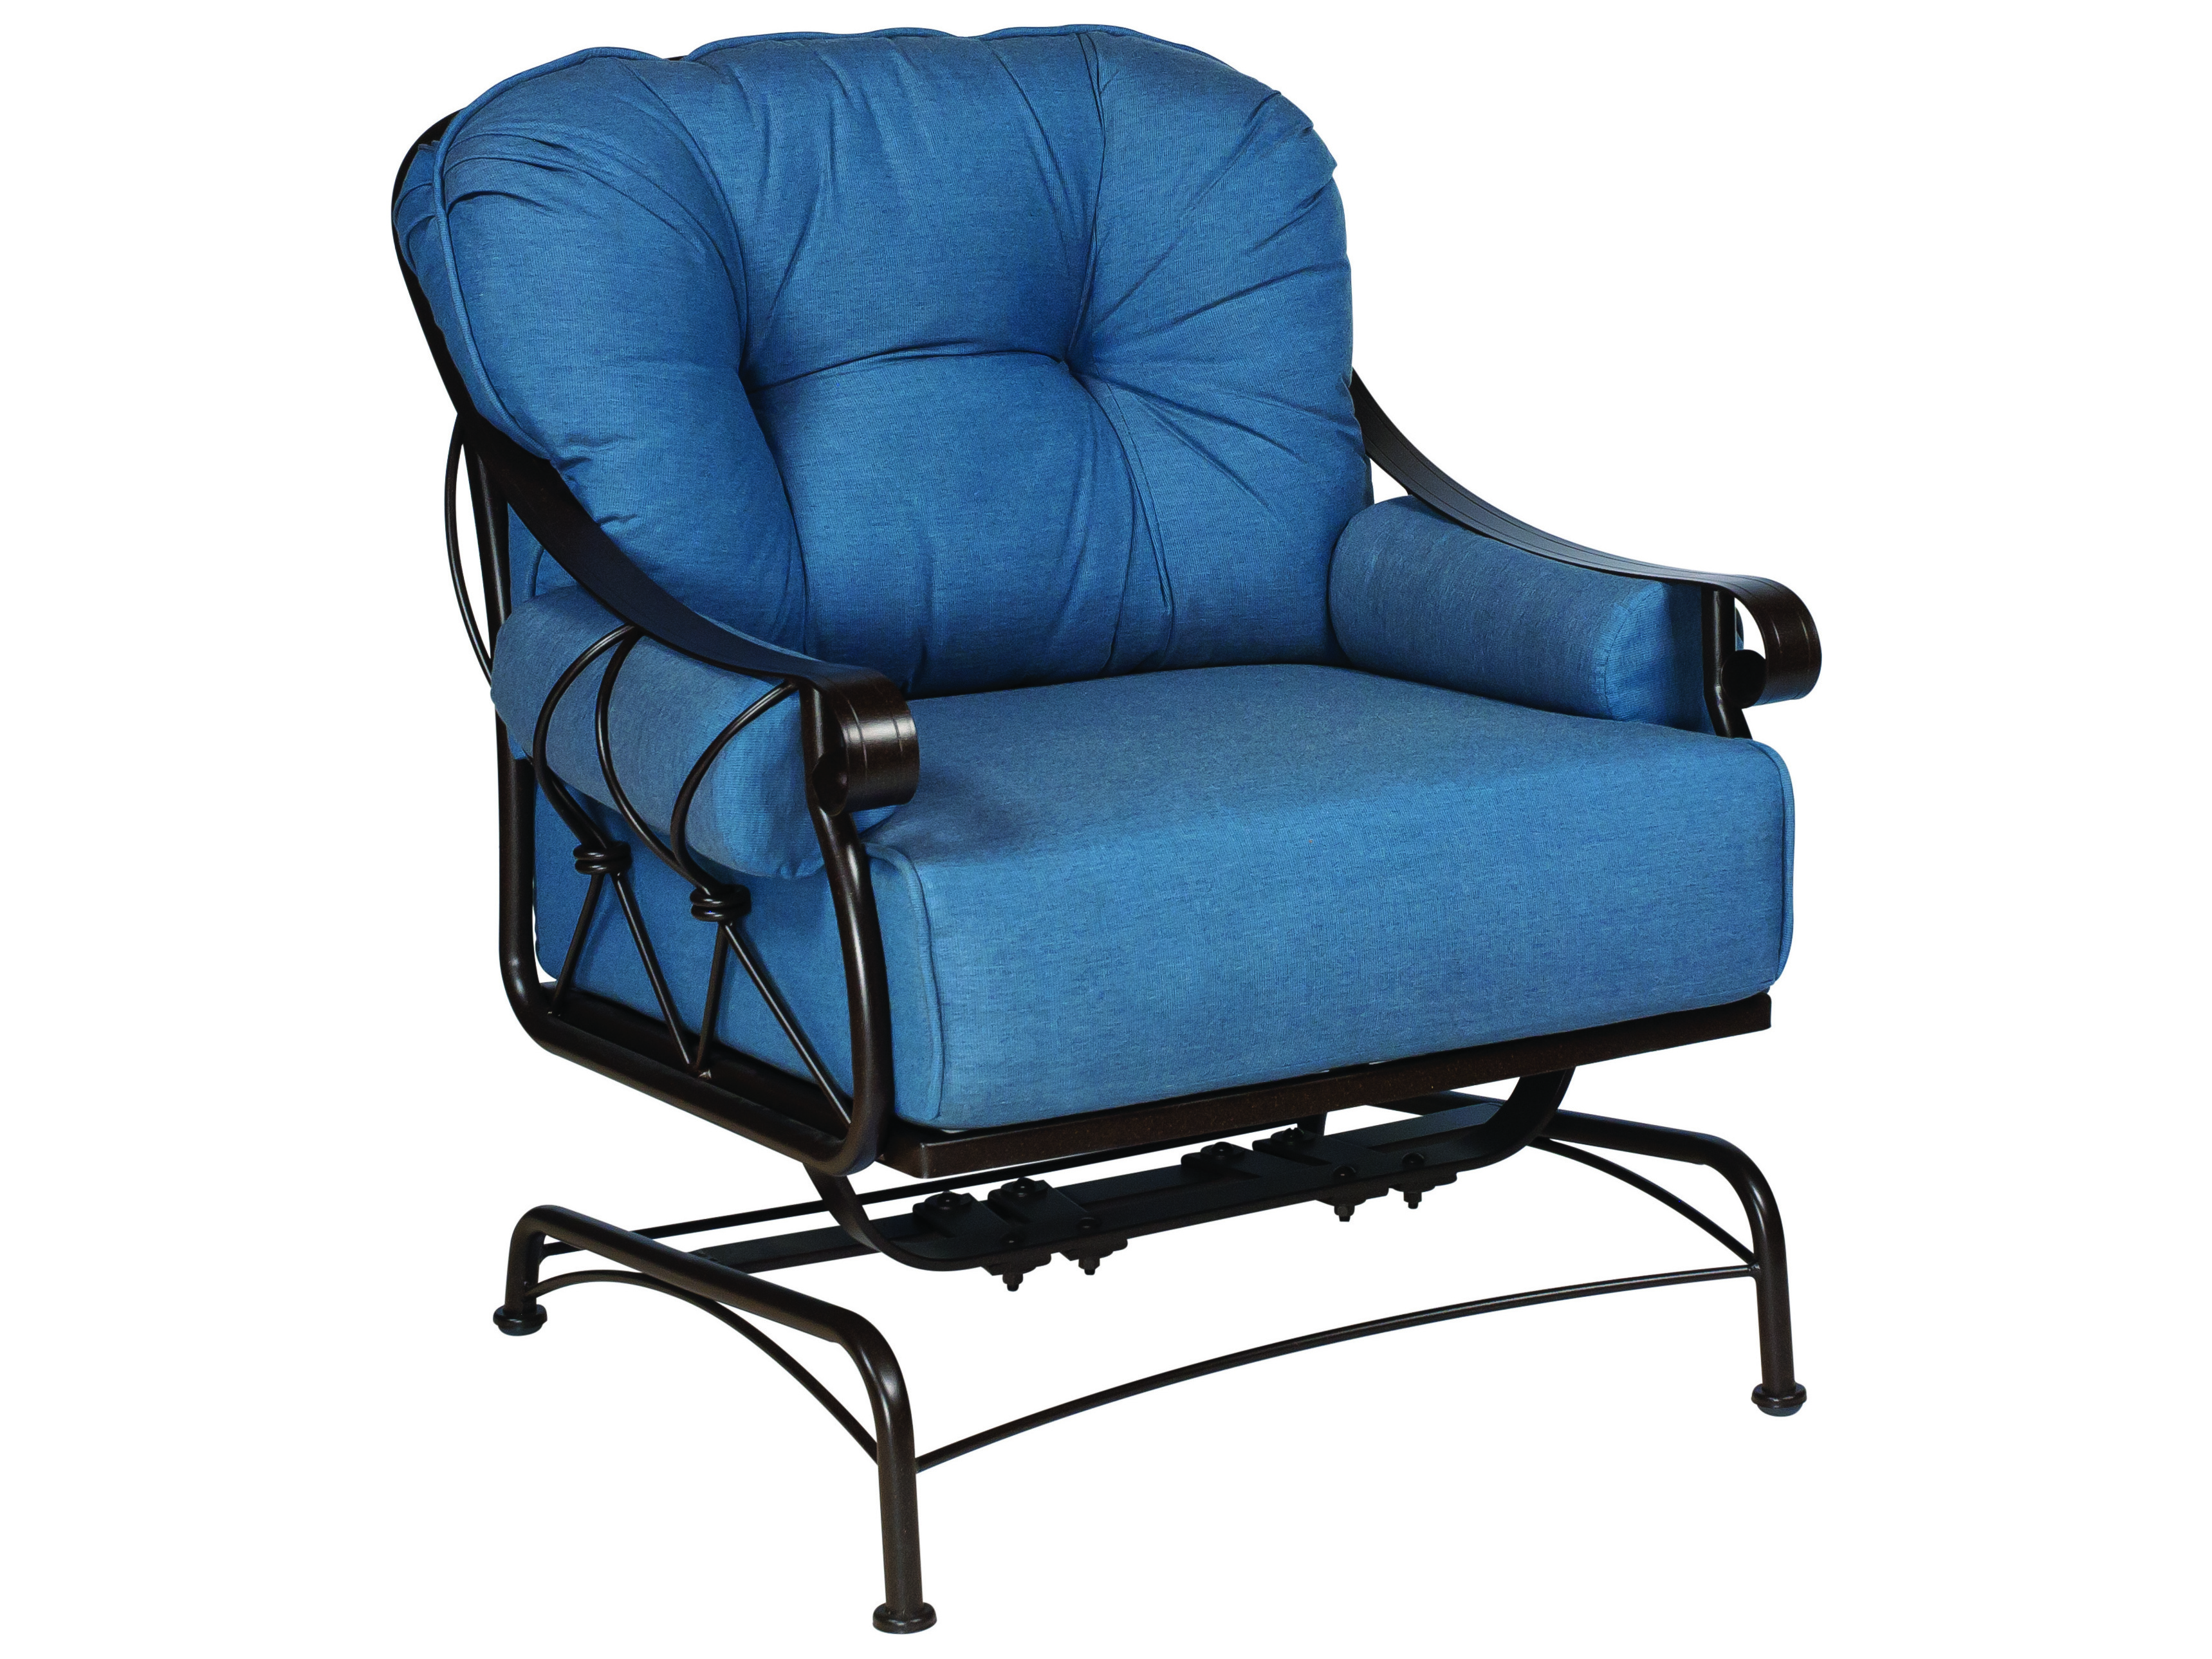 Woodard Derby Wrought Iron Spring Lounge Chair with